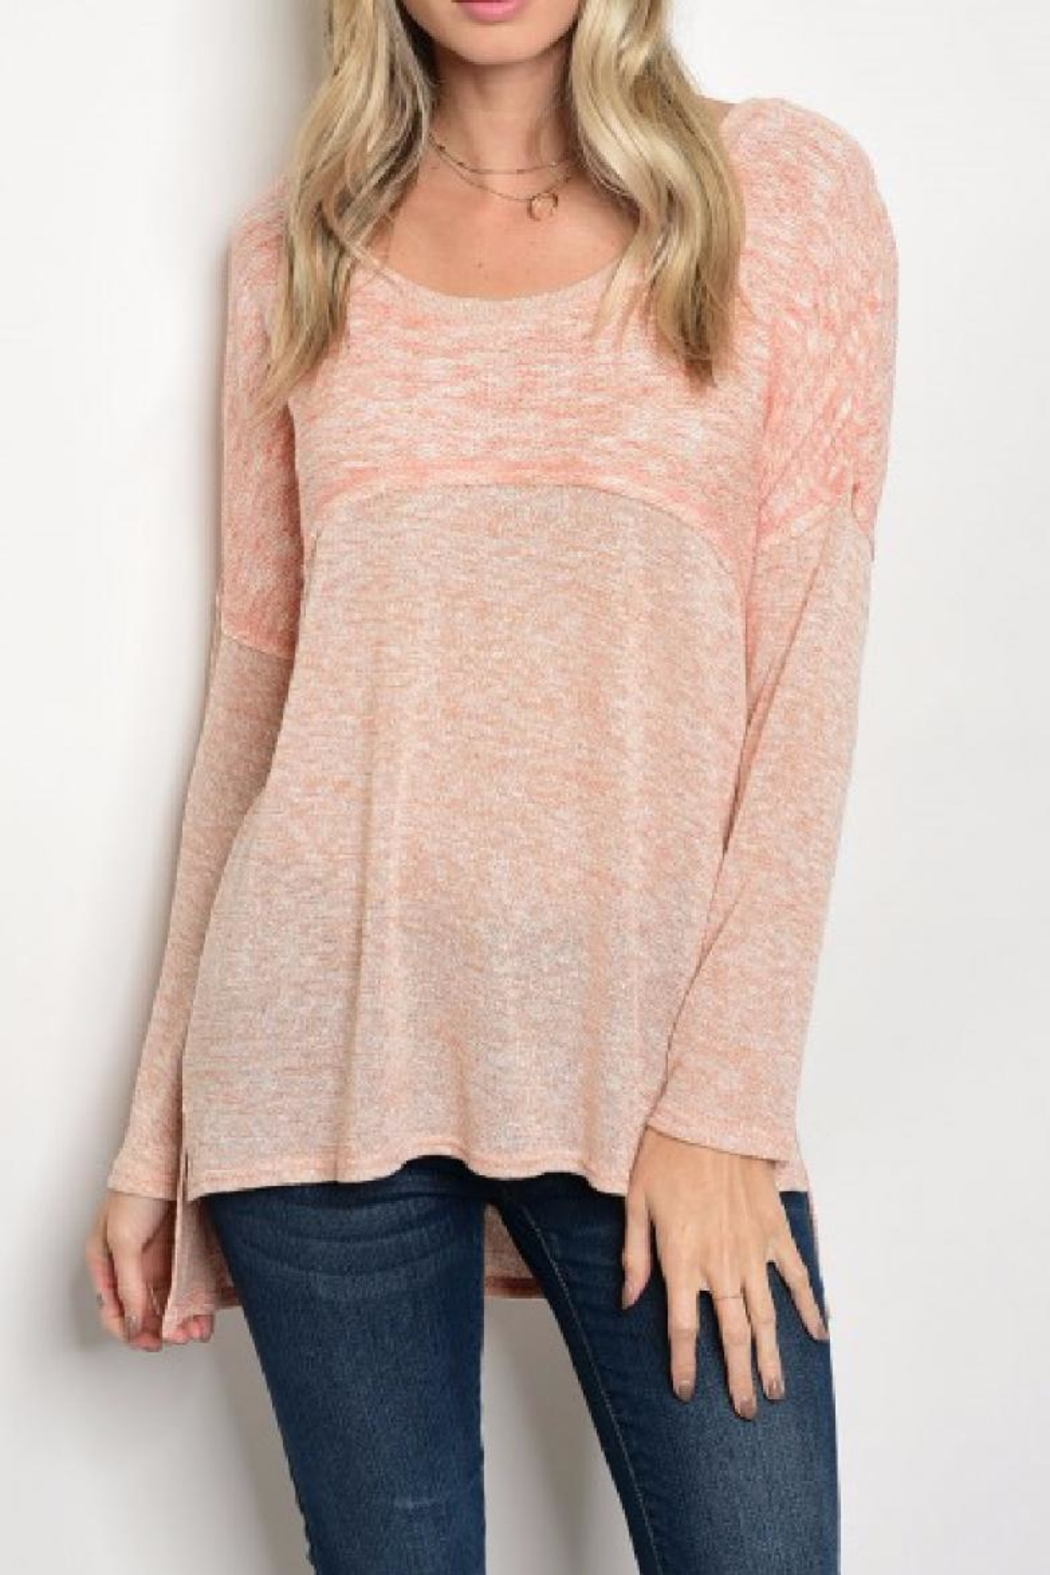 Tassels N Lace Light Sweater Top - Main Image